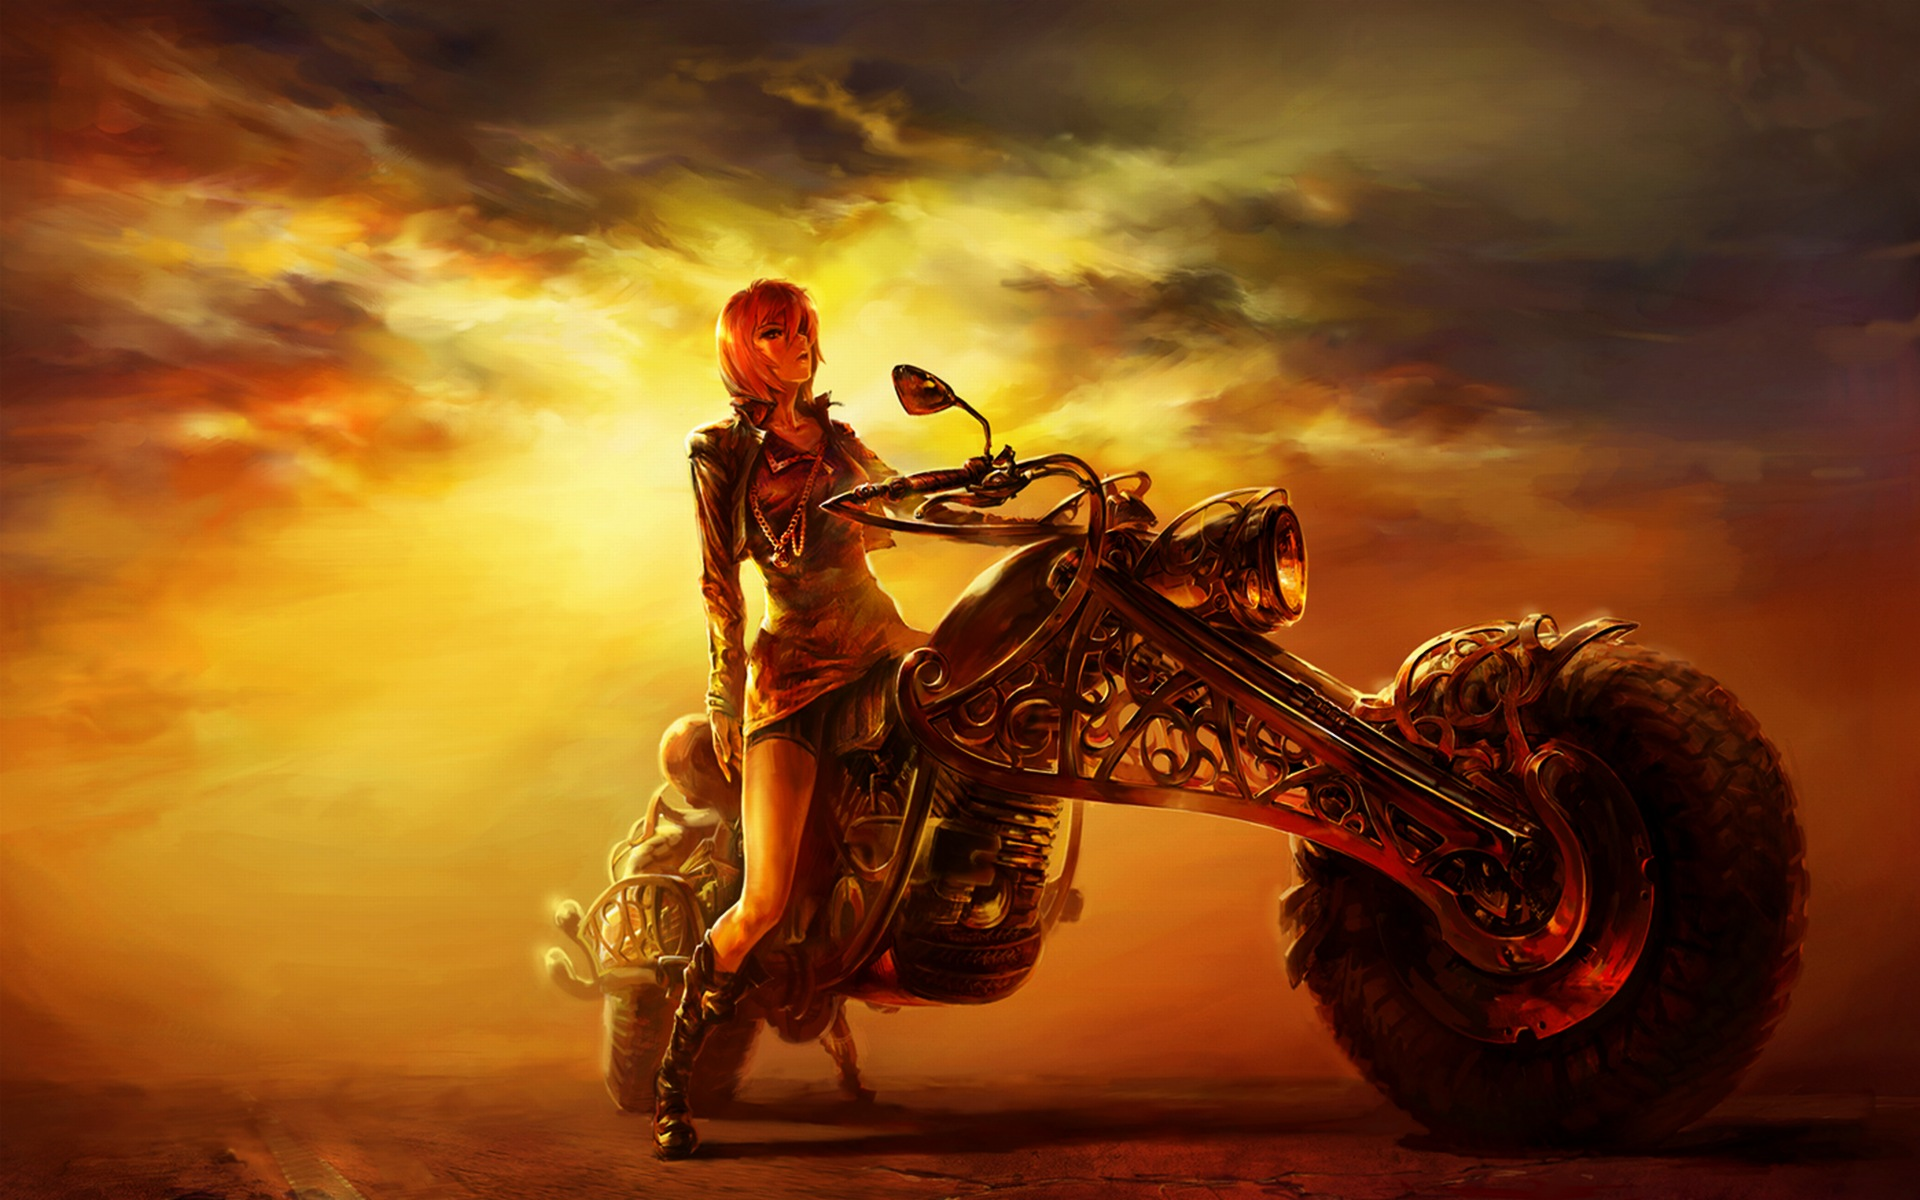 Biker Girl Wallpaper 30564 1920x1200